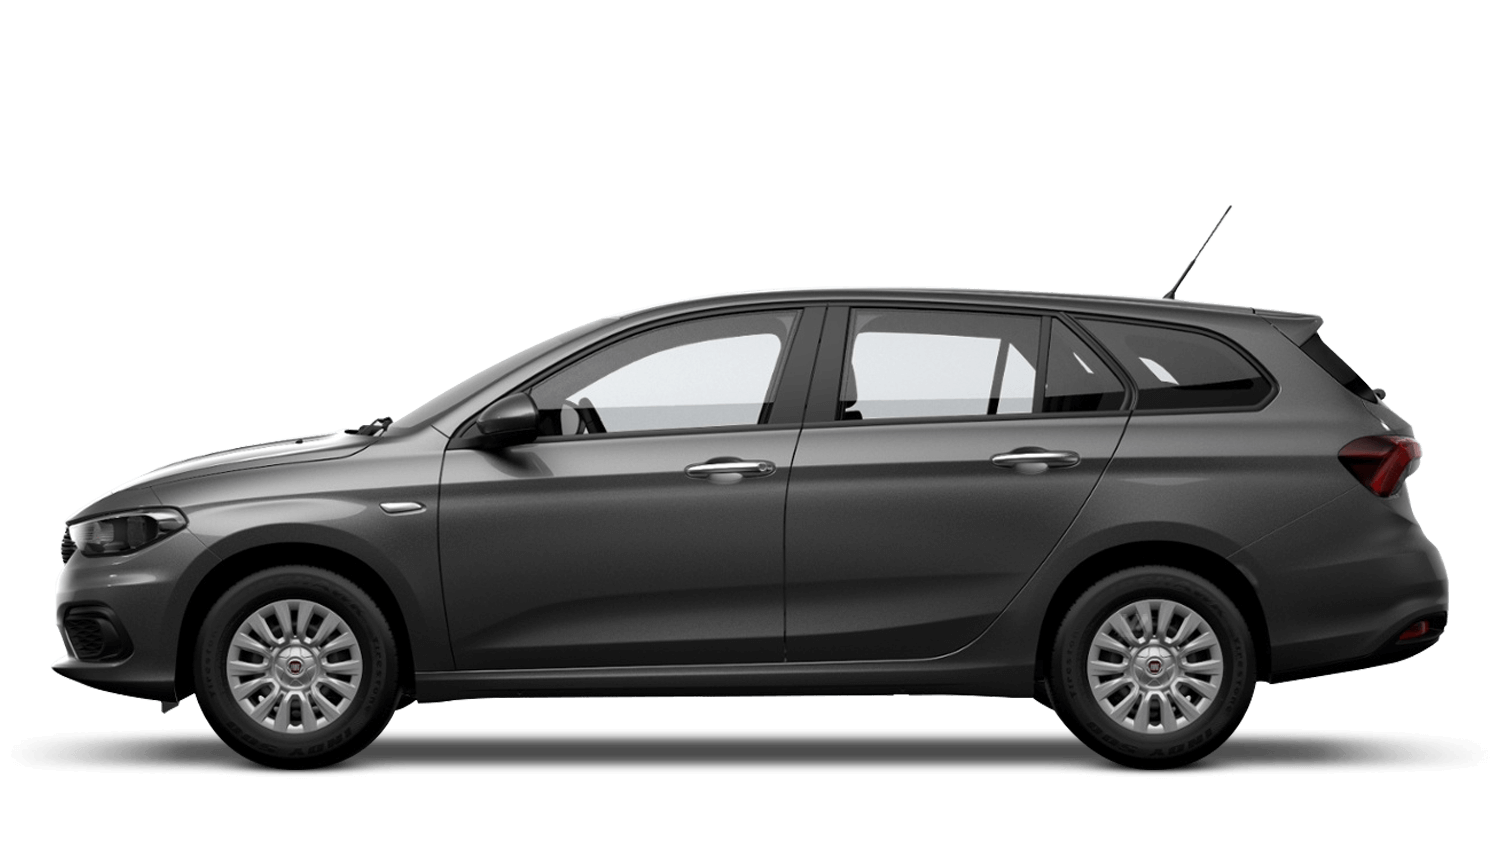 Electroclash Grey (Metallic) FIAT Tipo Station Wagon